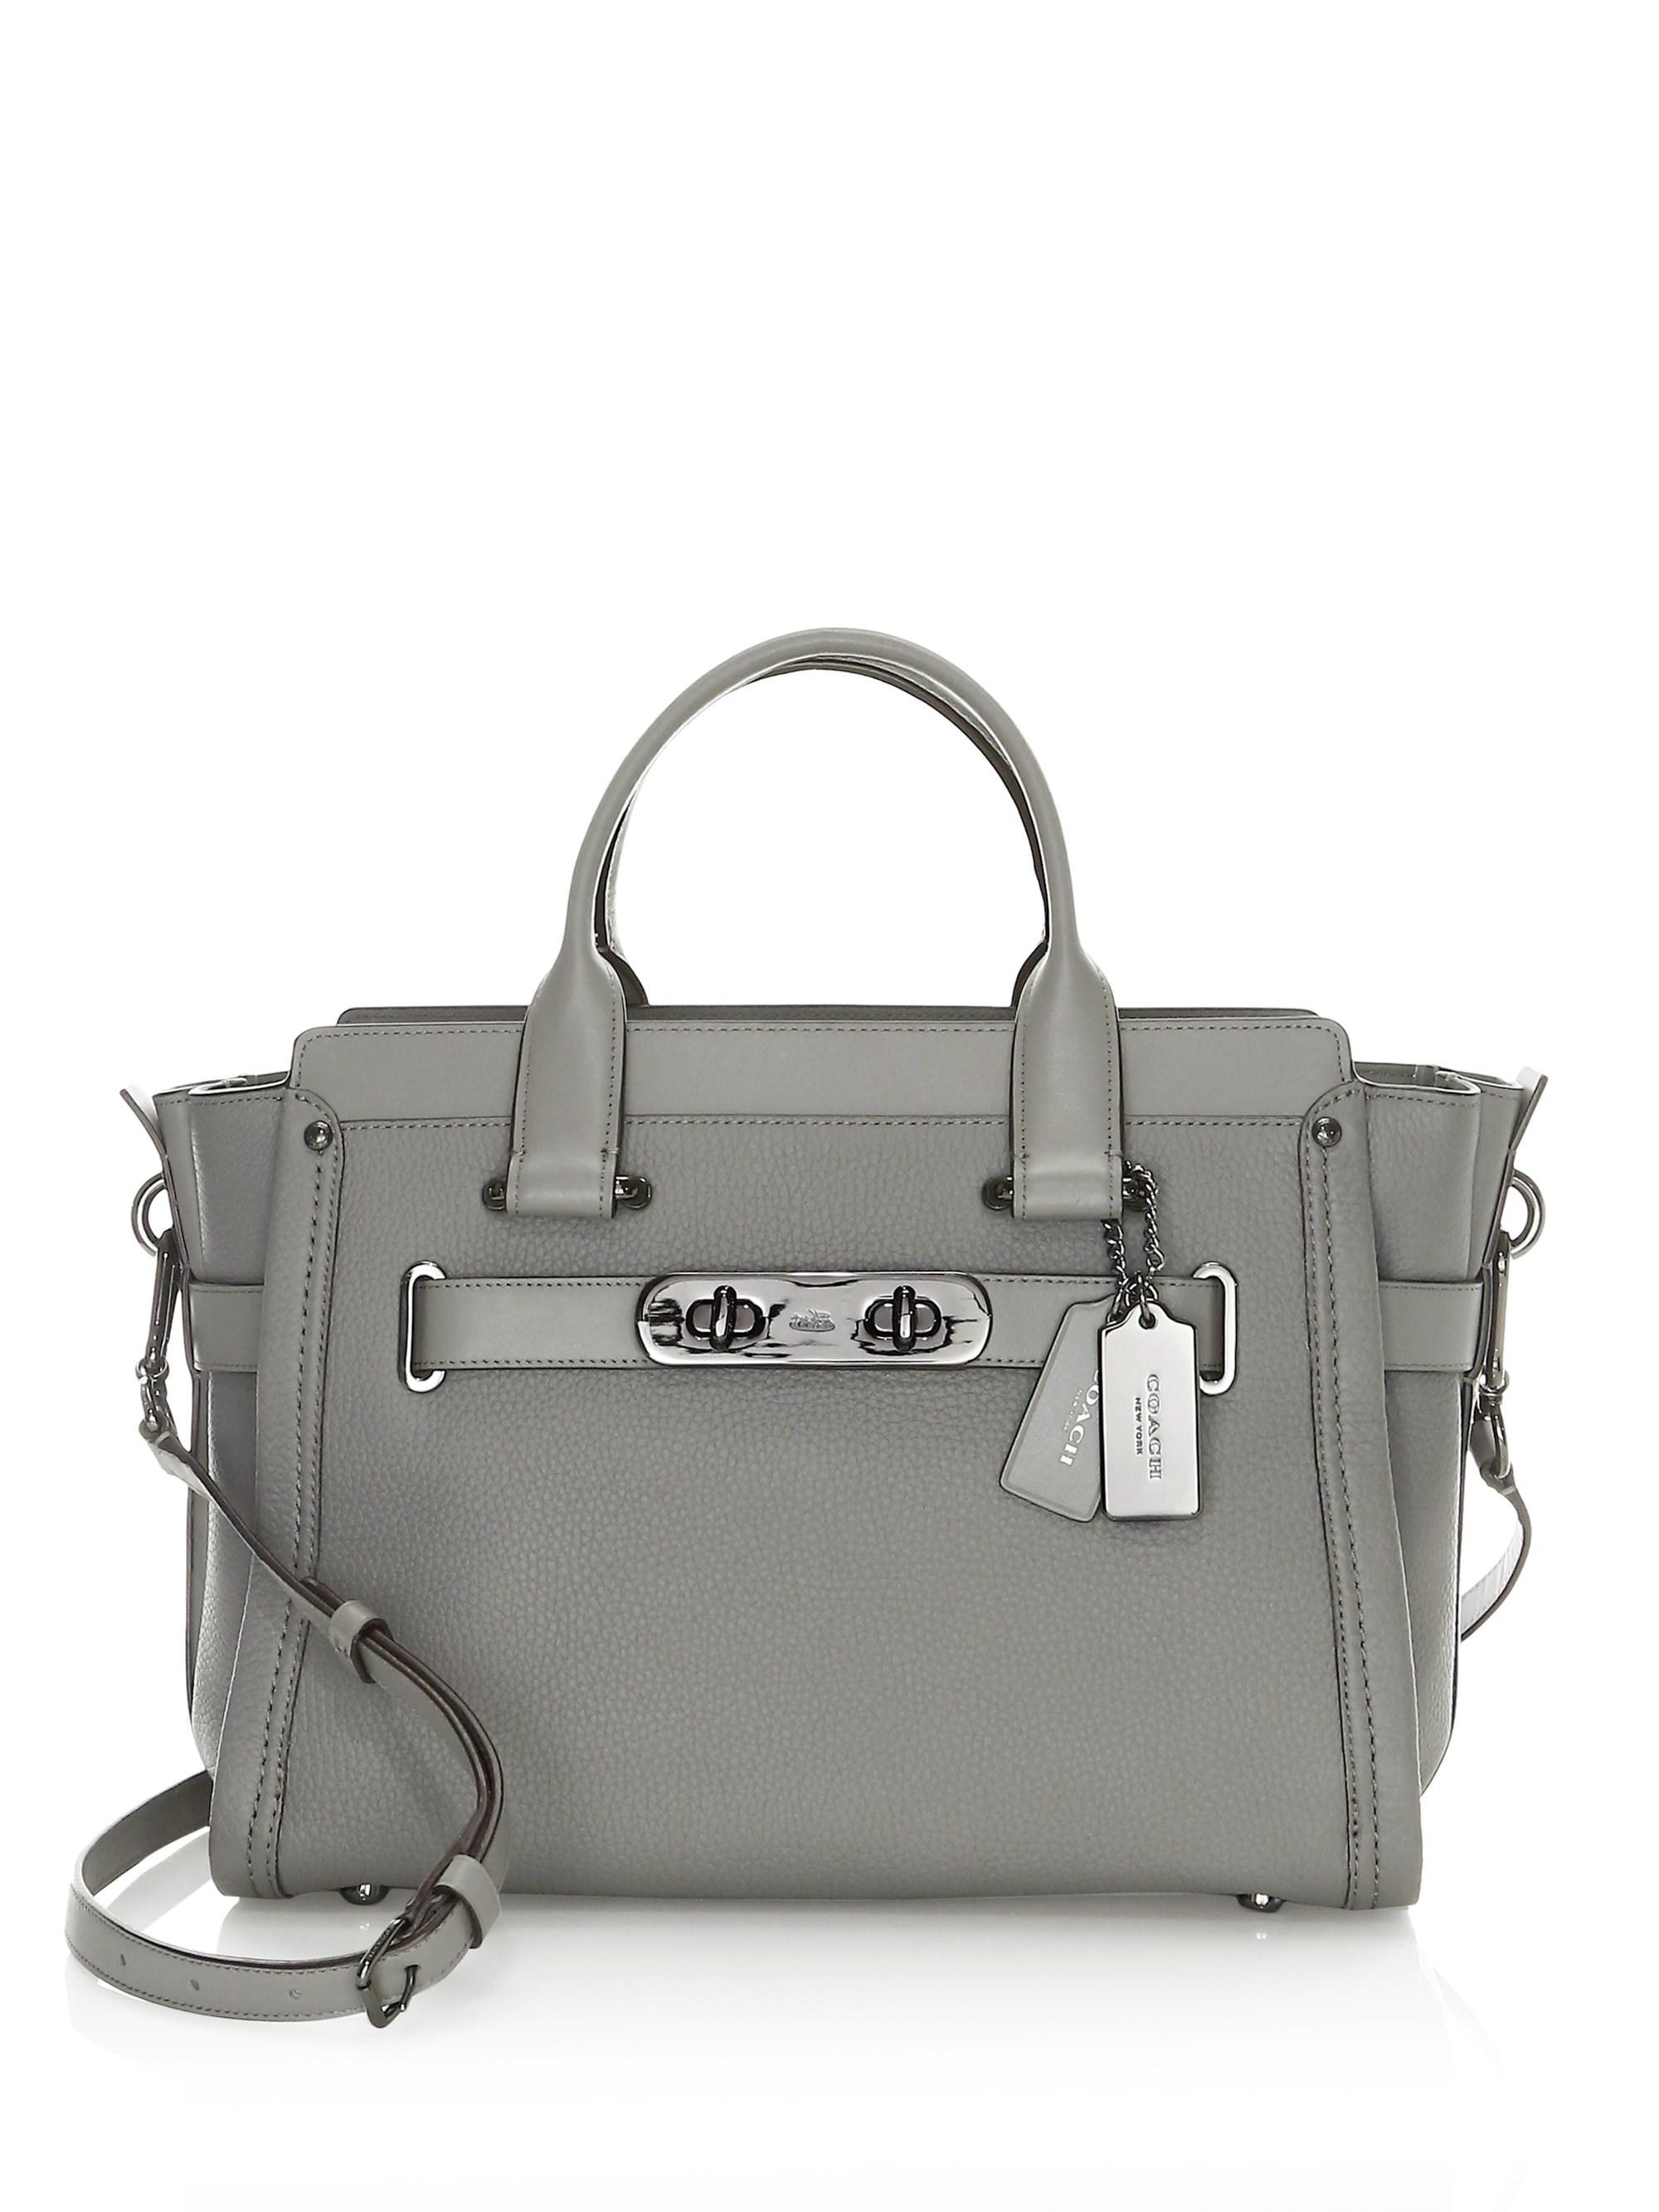 f510026bf983 Lyst - Coach Swagger Satchel in Gray